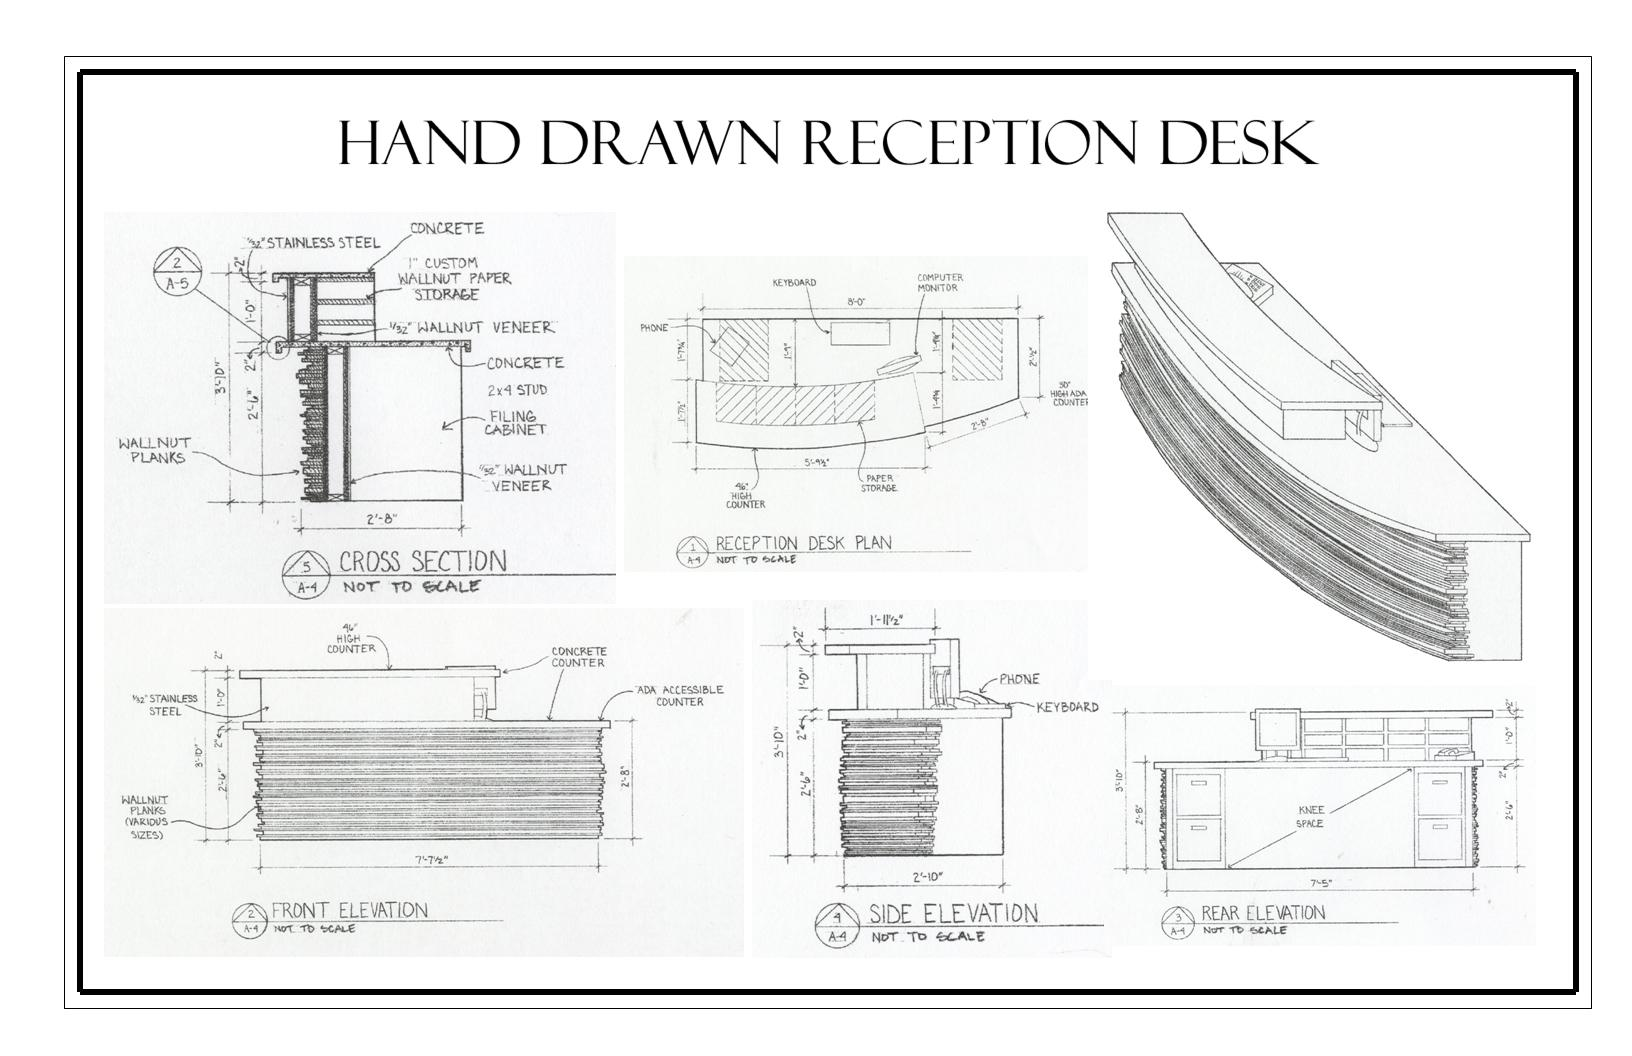 Reception Desk Designs Drawings Hand Draw Reception Desk